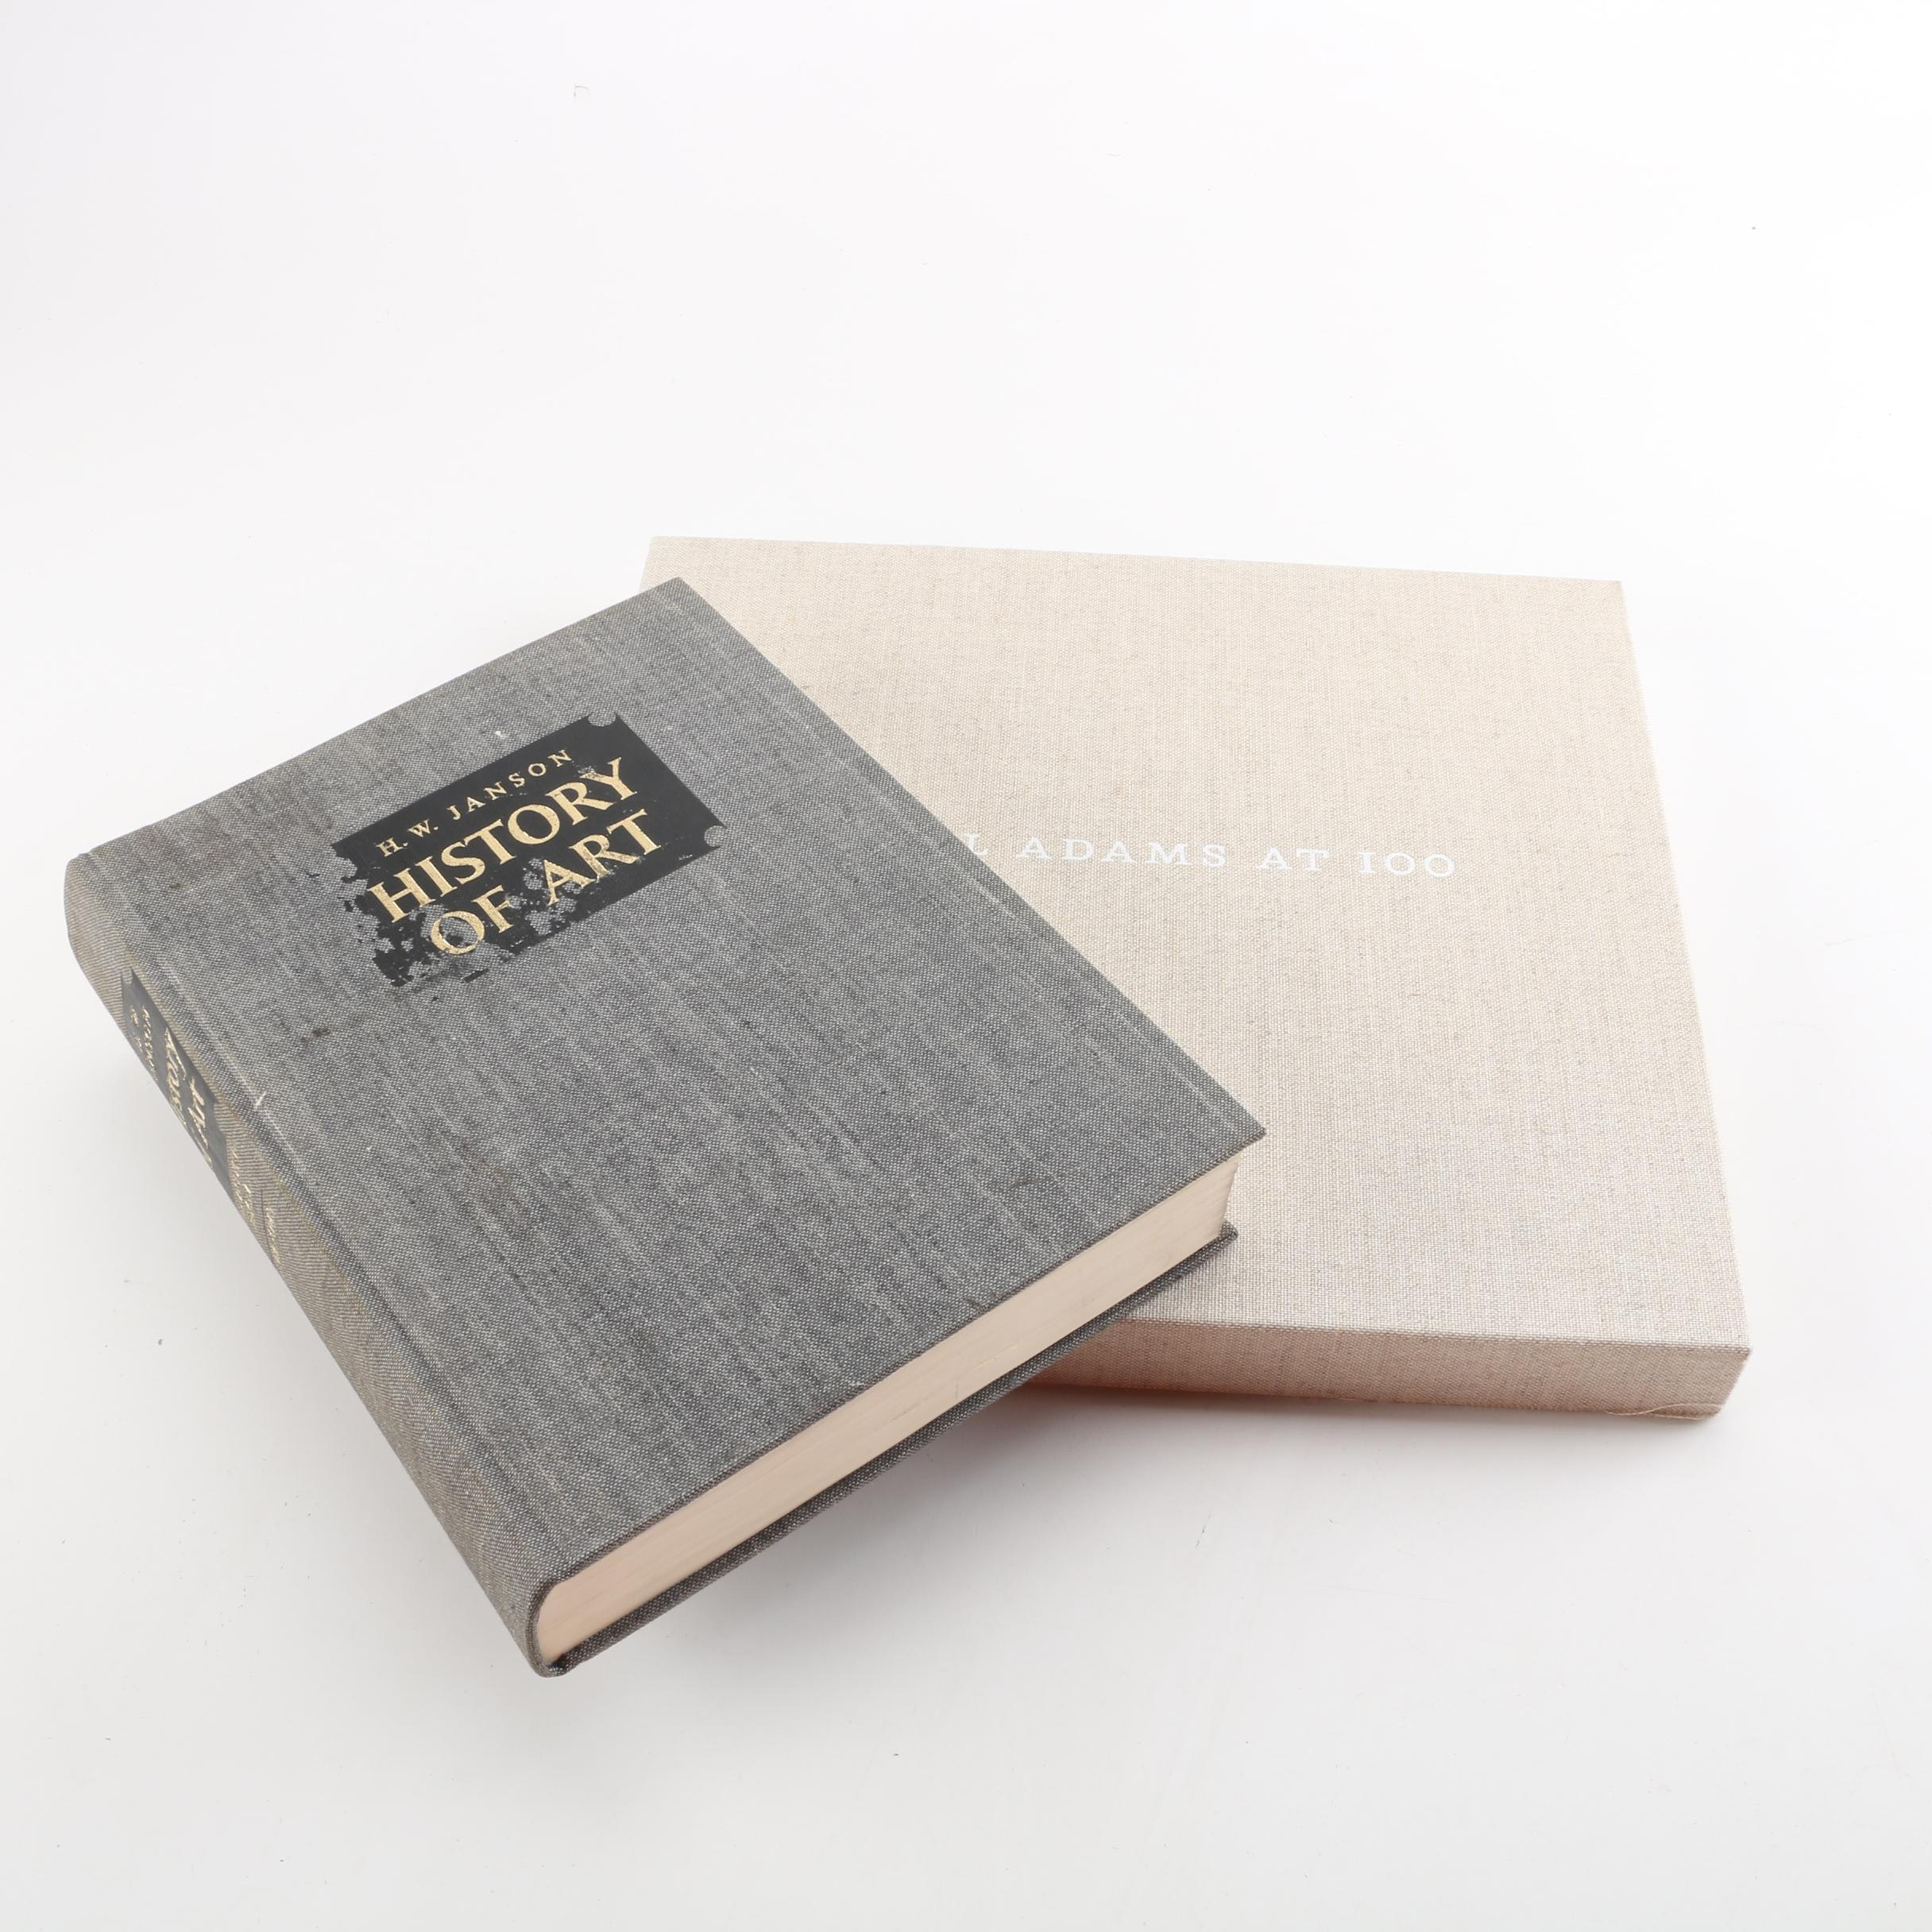 """First Edition """"Ansel Adams at 100"""" and """"History of Art"""" Books"""